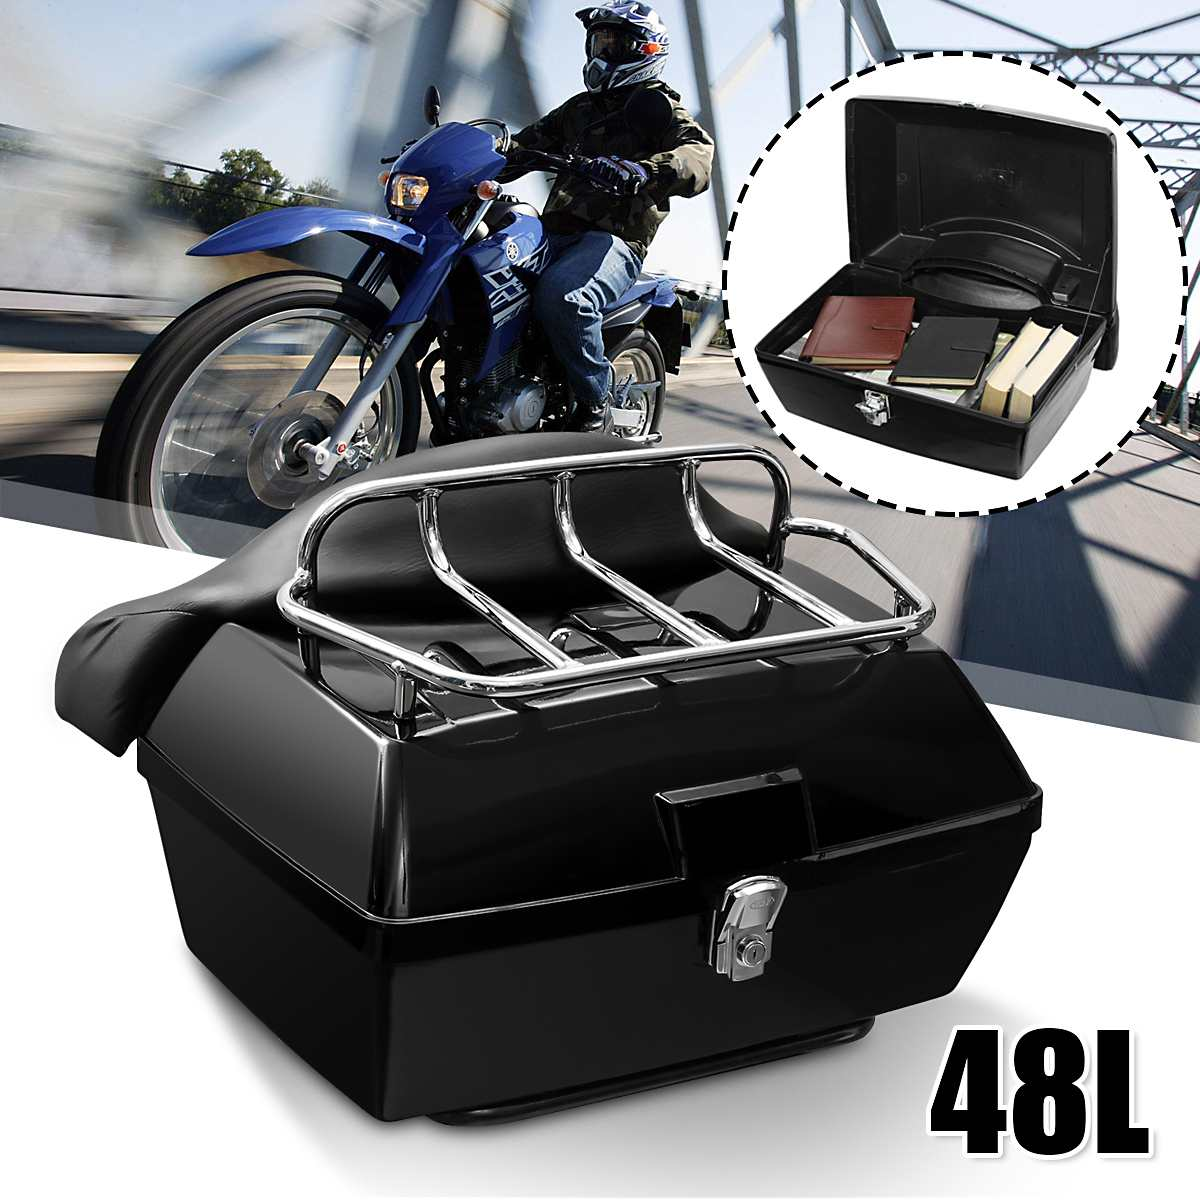 48L Universal Motorcycle Rear Tail Storage Box Luggage Trunk Case Toolbox Scooter Motorbike For Halley Honda Suzuki Yamaha BMW|Motorcycle Trunk| |  - title=